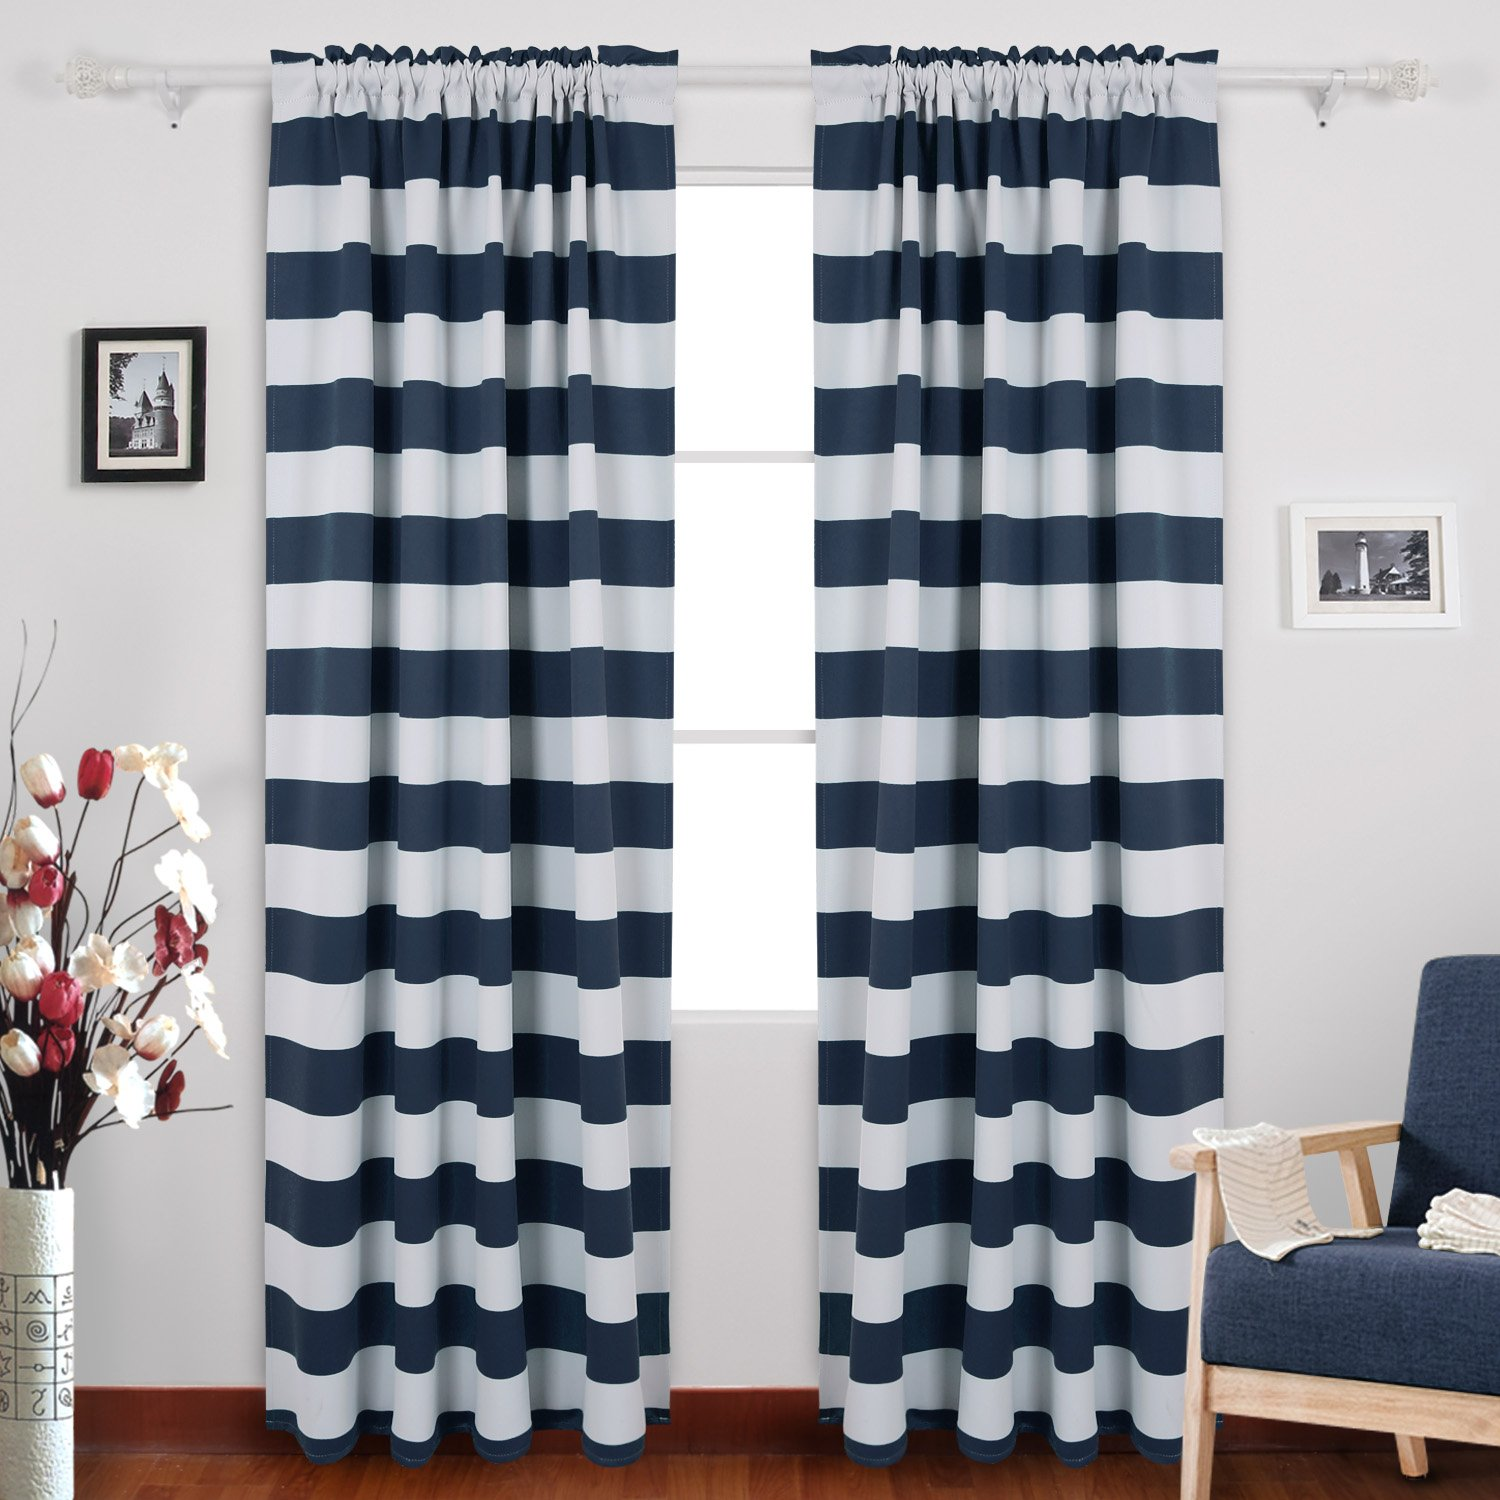 Cheap Red And Navy Curtains Find Red And Navy Curtains Deals On Line At Alibaba Com